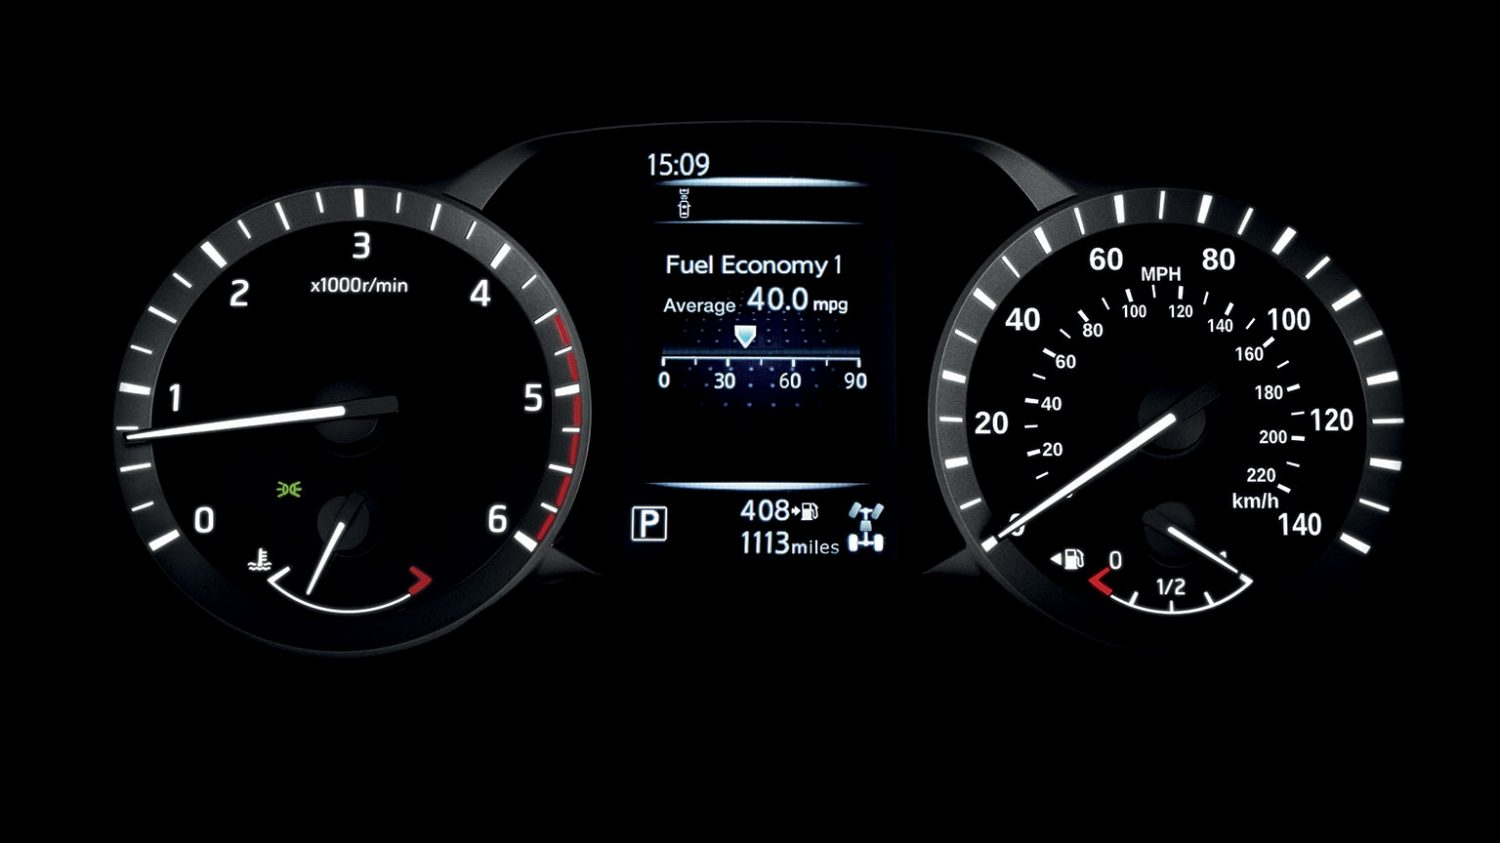 Nissan Navara - Fuel-economy display